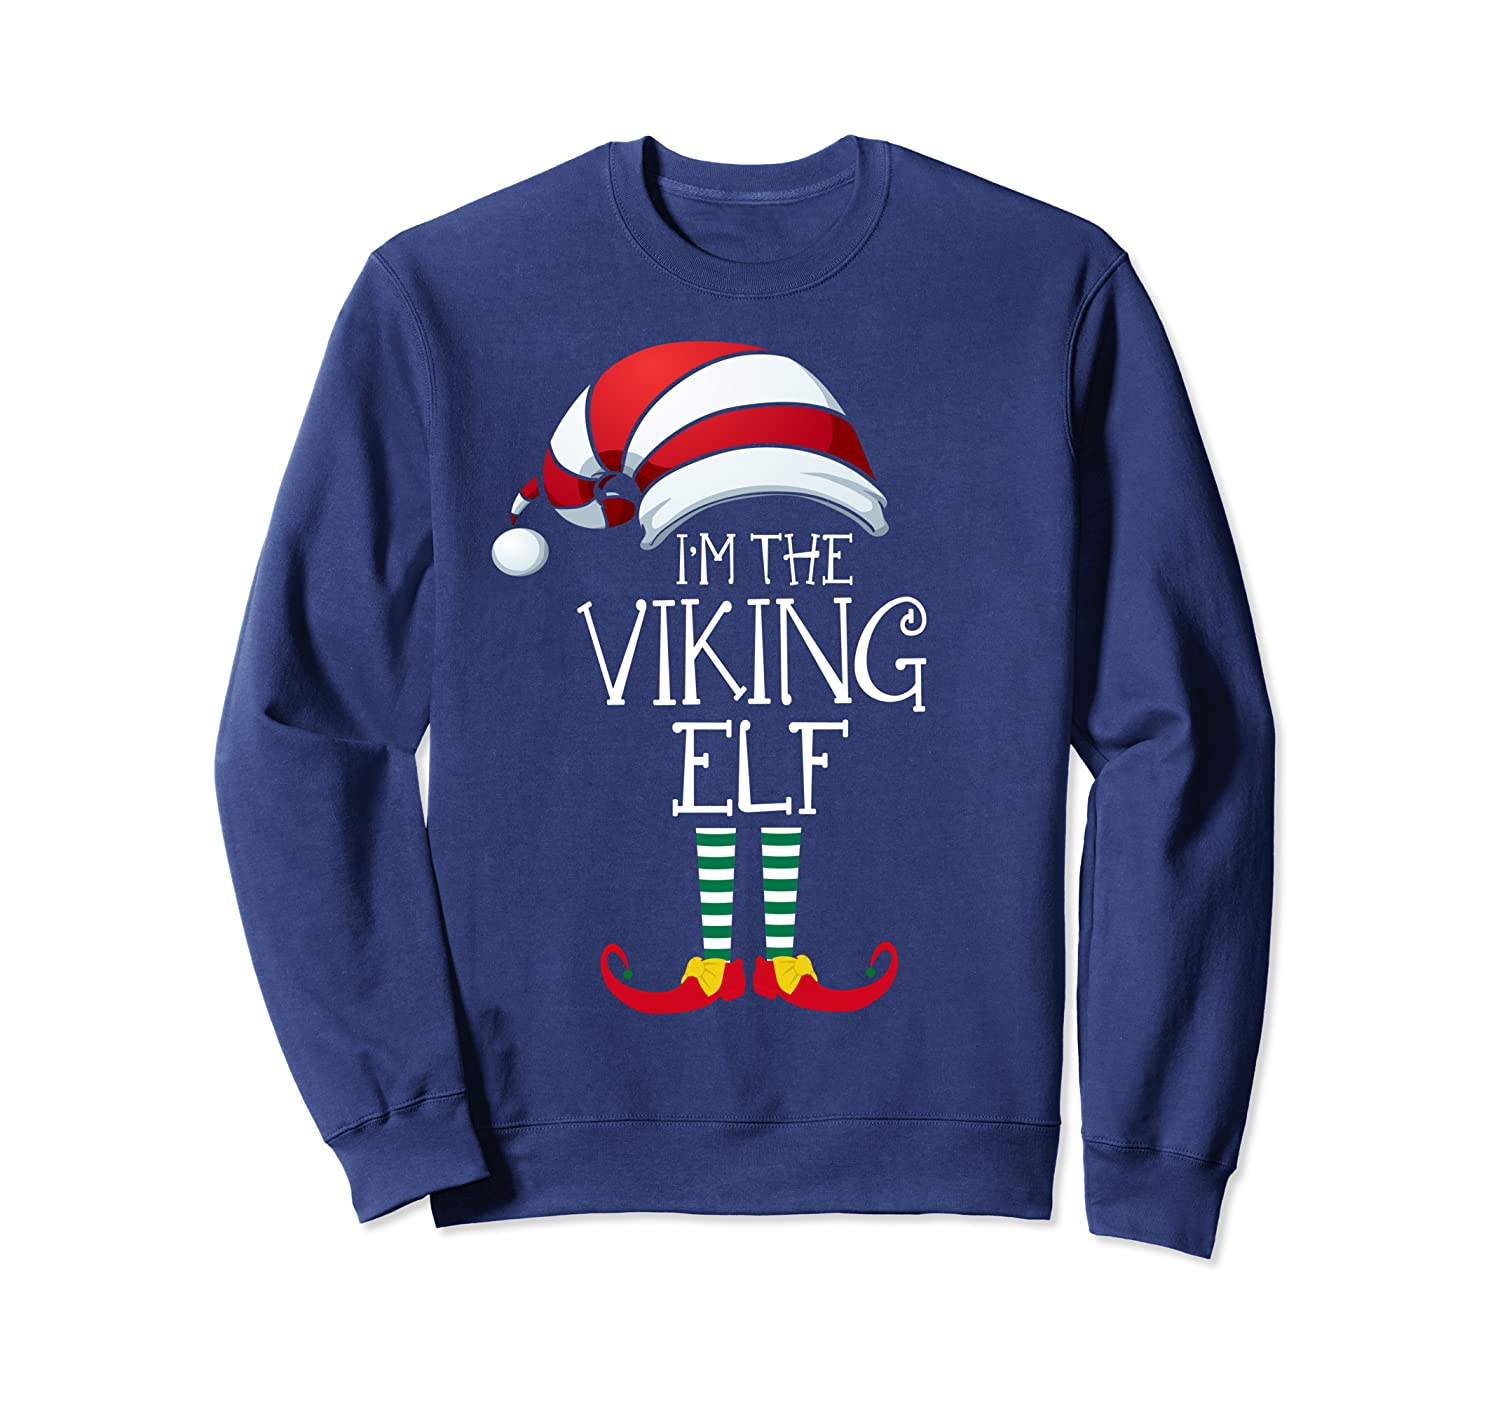 I'm The Viking Elf Family Matching Christmas Gift Group Sweatshirt-TH